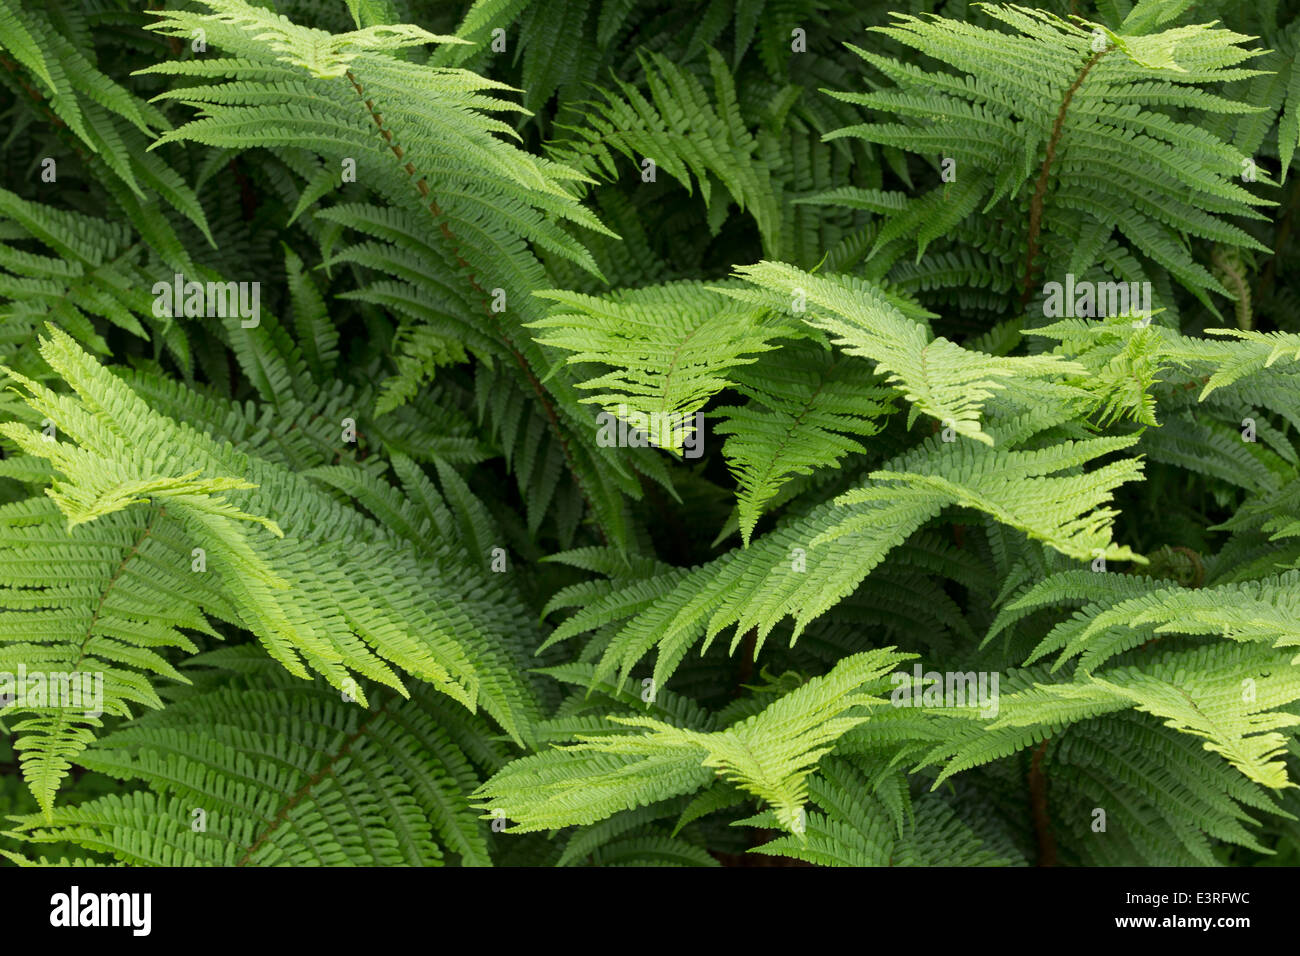 Looking down into the heart of a fern. - Stock Image